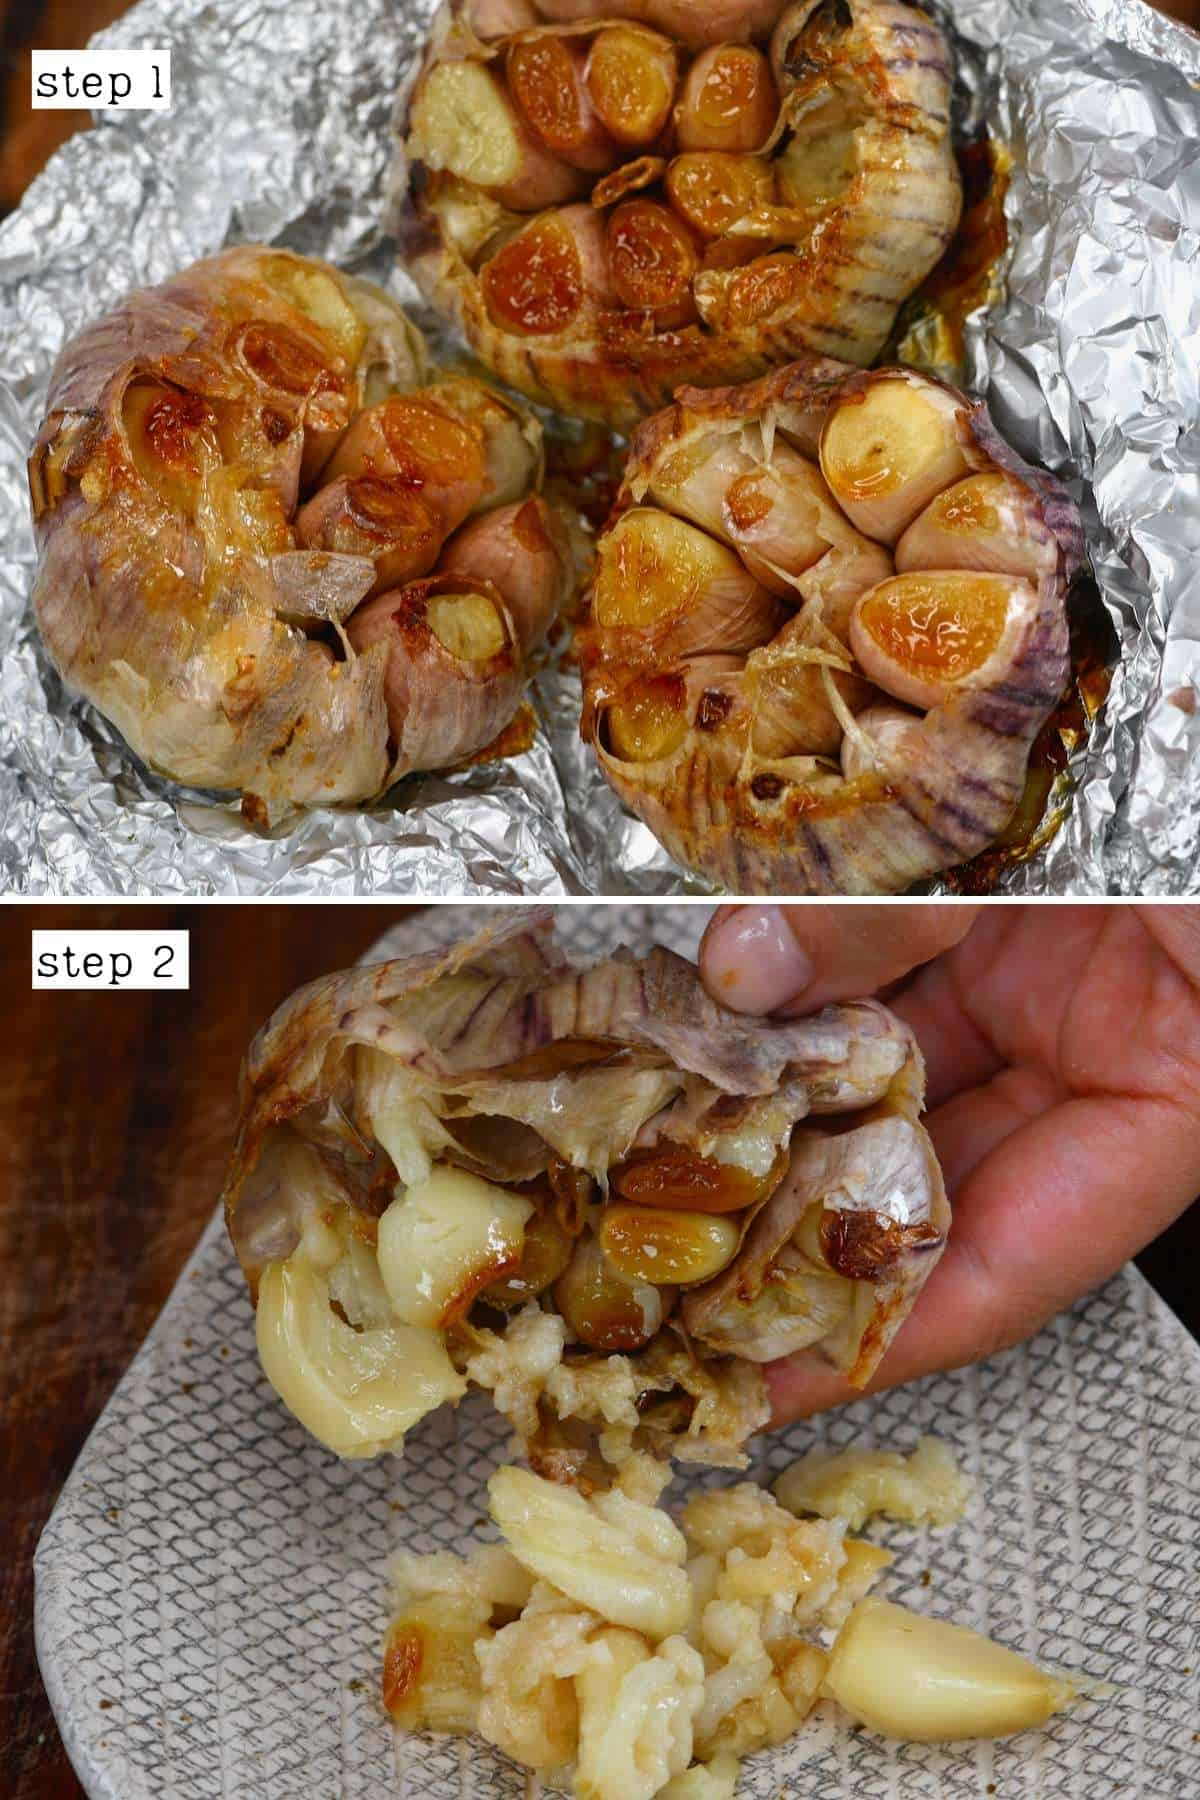 Taking out roasted garlic cloves